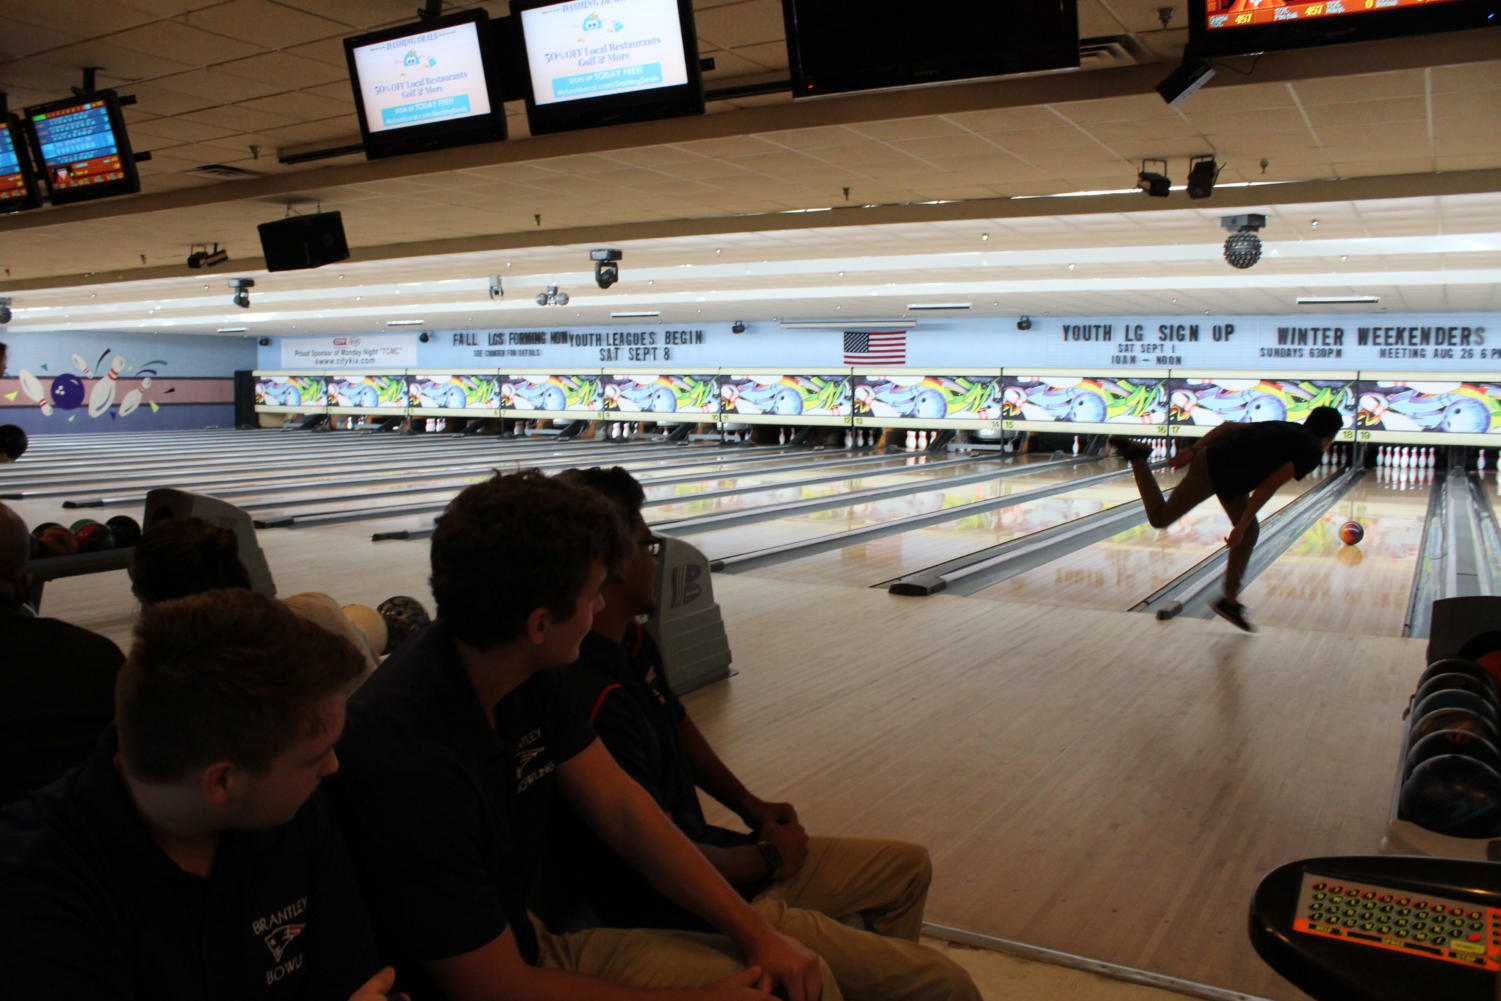 The+team+watches+one+of+their+teammates+take+his+turn+bowling+on+Monday%2C+August+27+at+Oviedo+Lanes.+After+a+good+turn%2C+the+players+would+exchange+high+fives+and+handshakes.